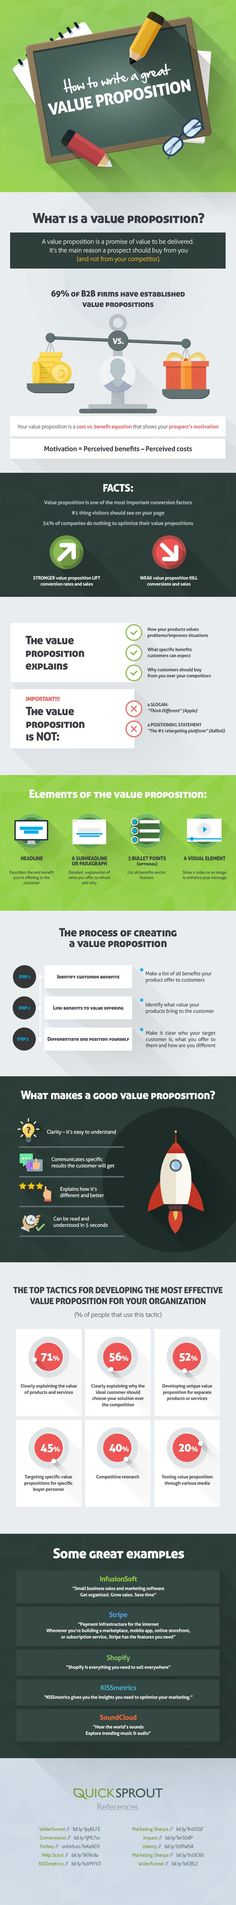 How to Write a Great Value Proposition #infographic